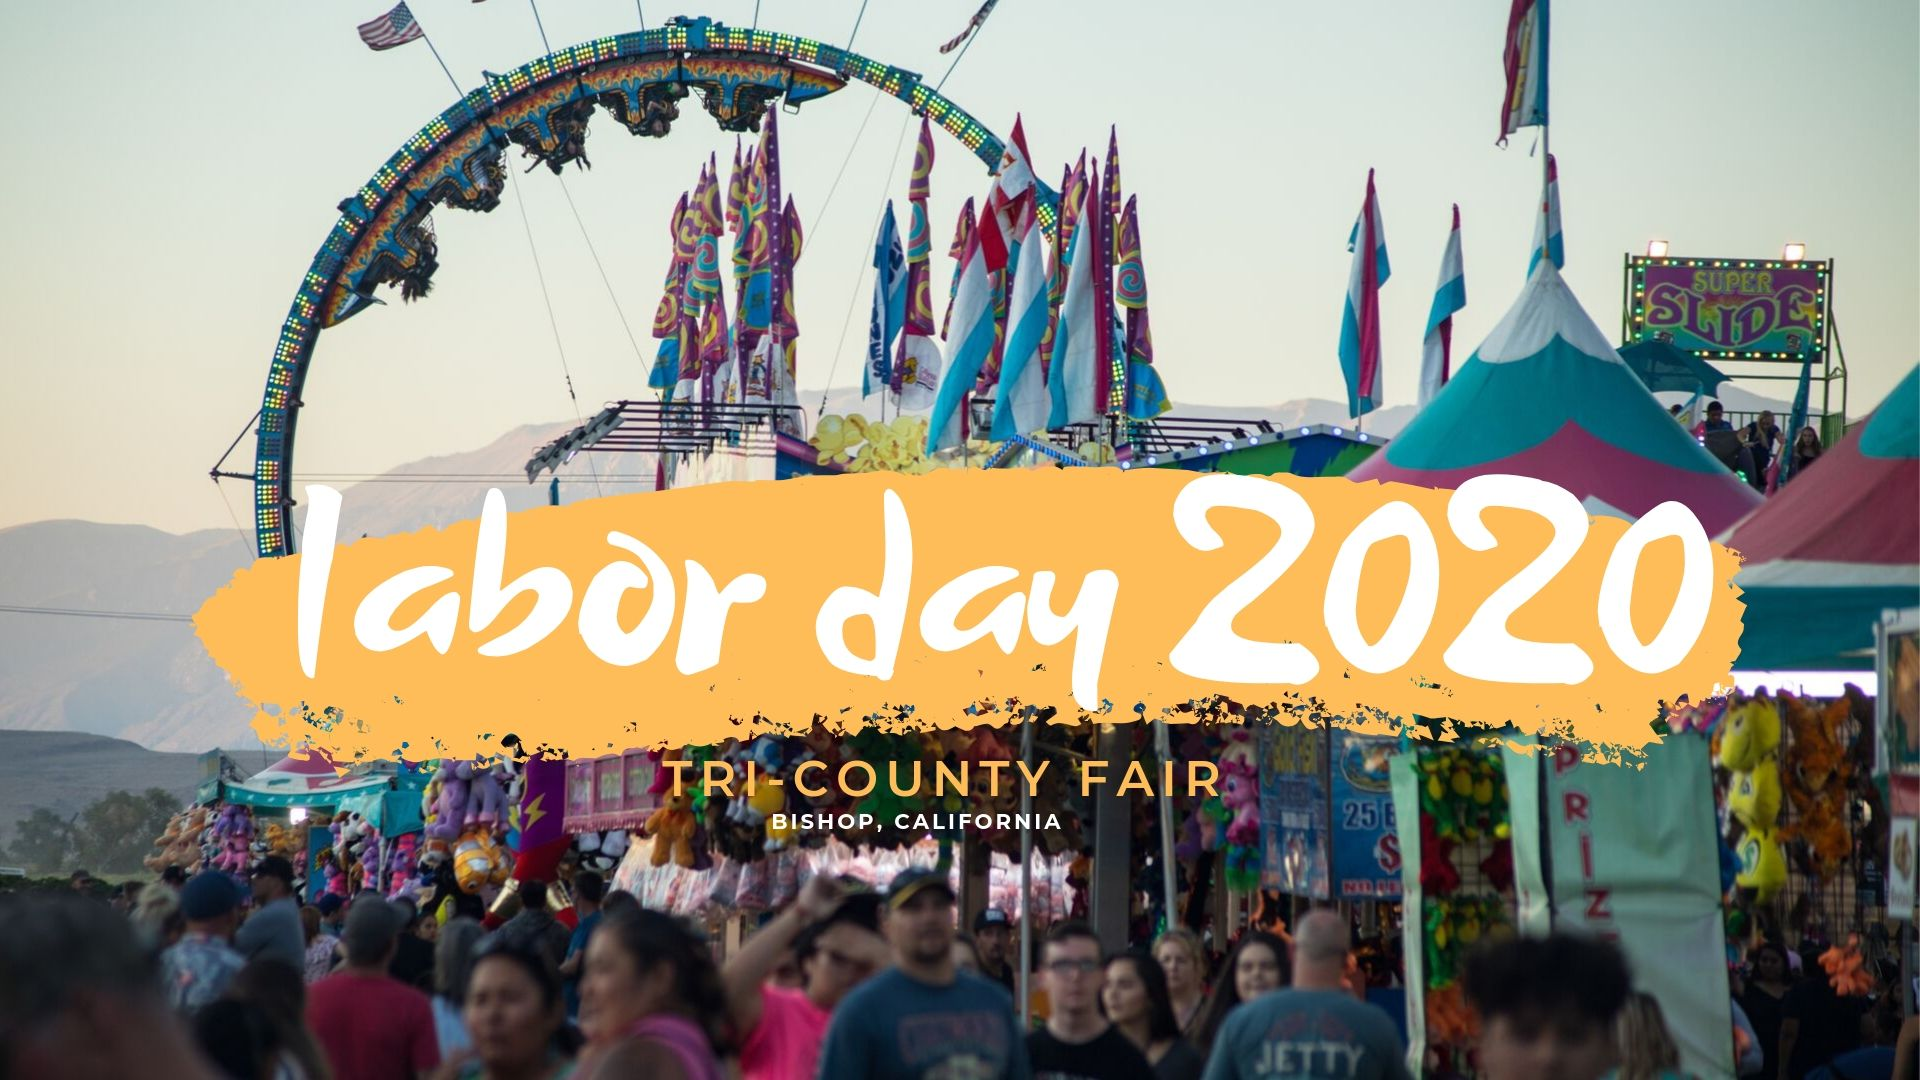 Tri County Fair Labor Day 2020